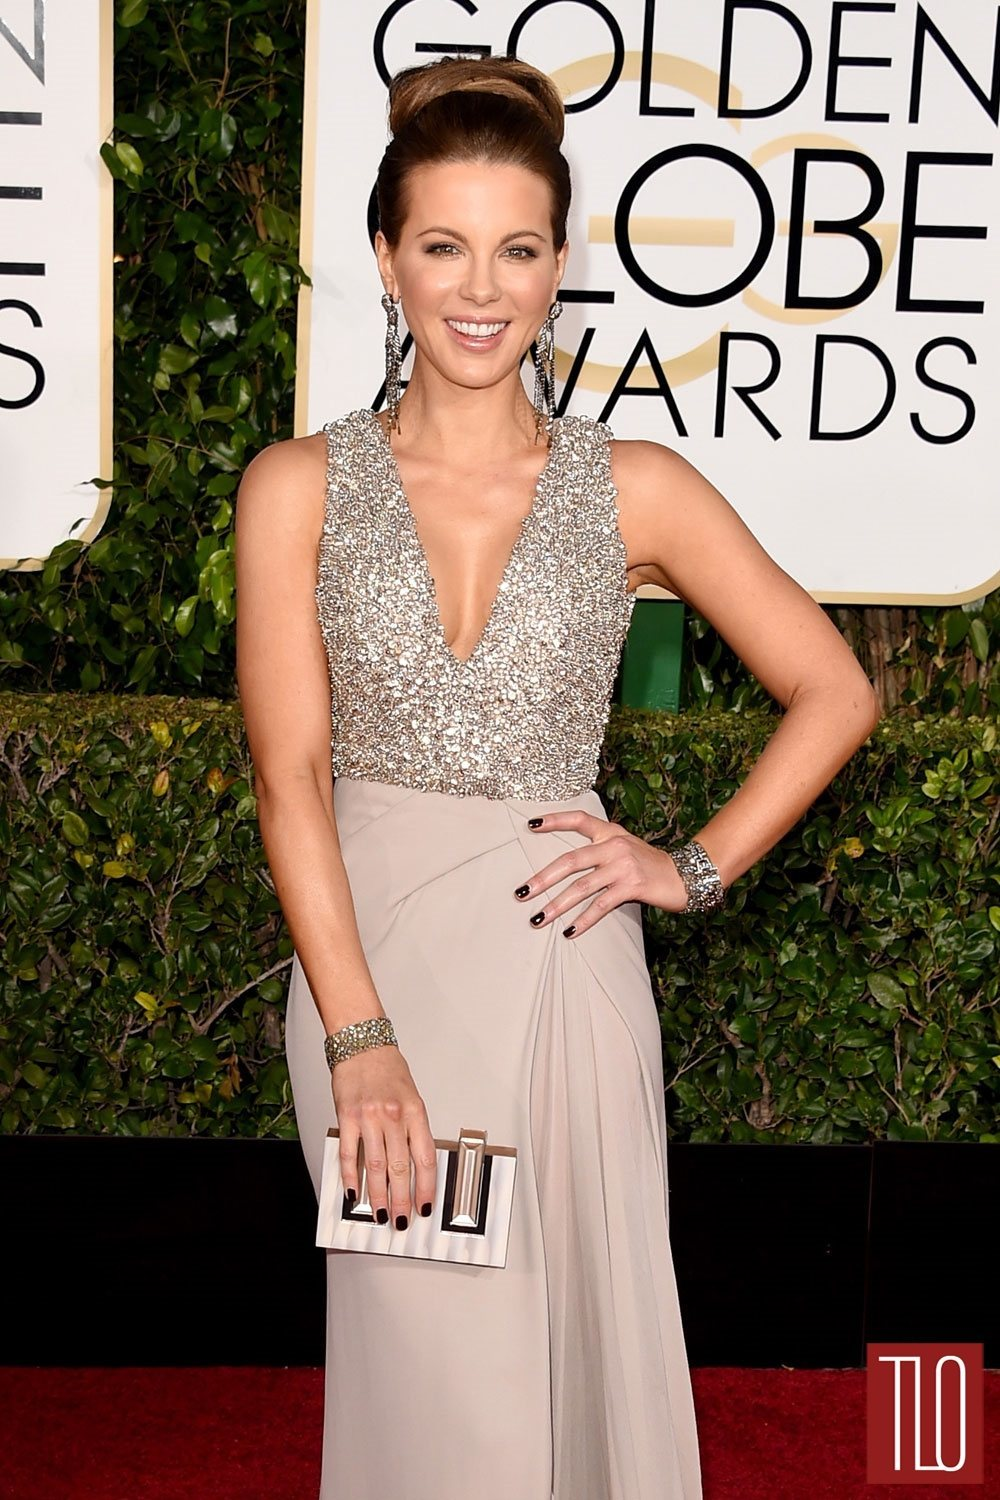 Kate-Beckinsale-2015-Golden-Globe-Awards-Red-Carpet-Fashion-Elie-Saab-Couture-Tom-LOrenzo-Site-TLO (1)